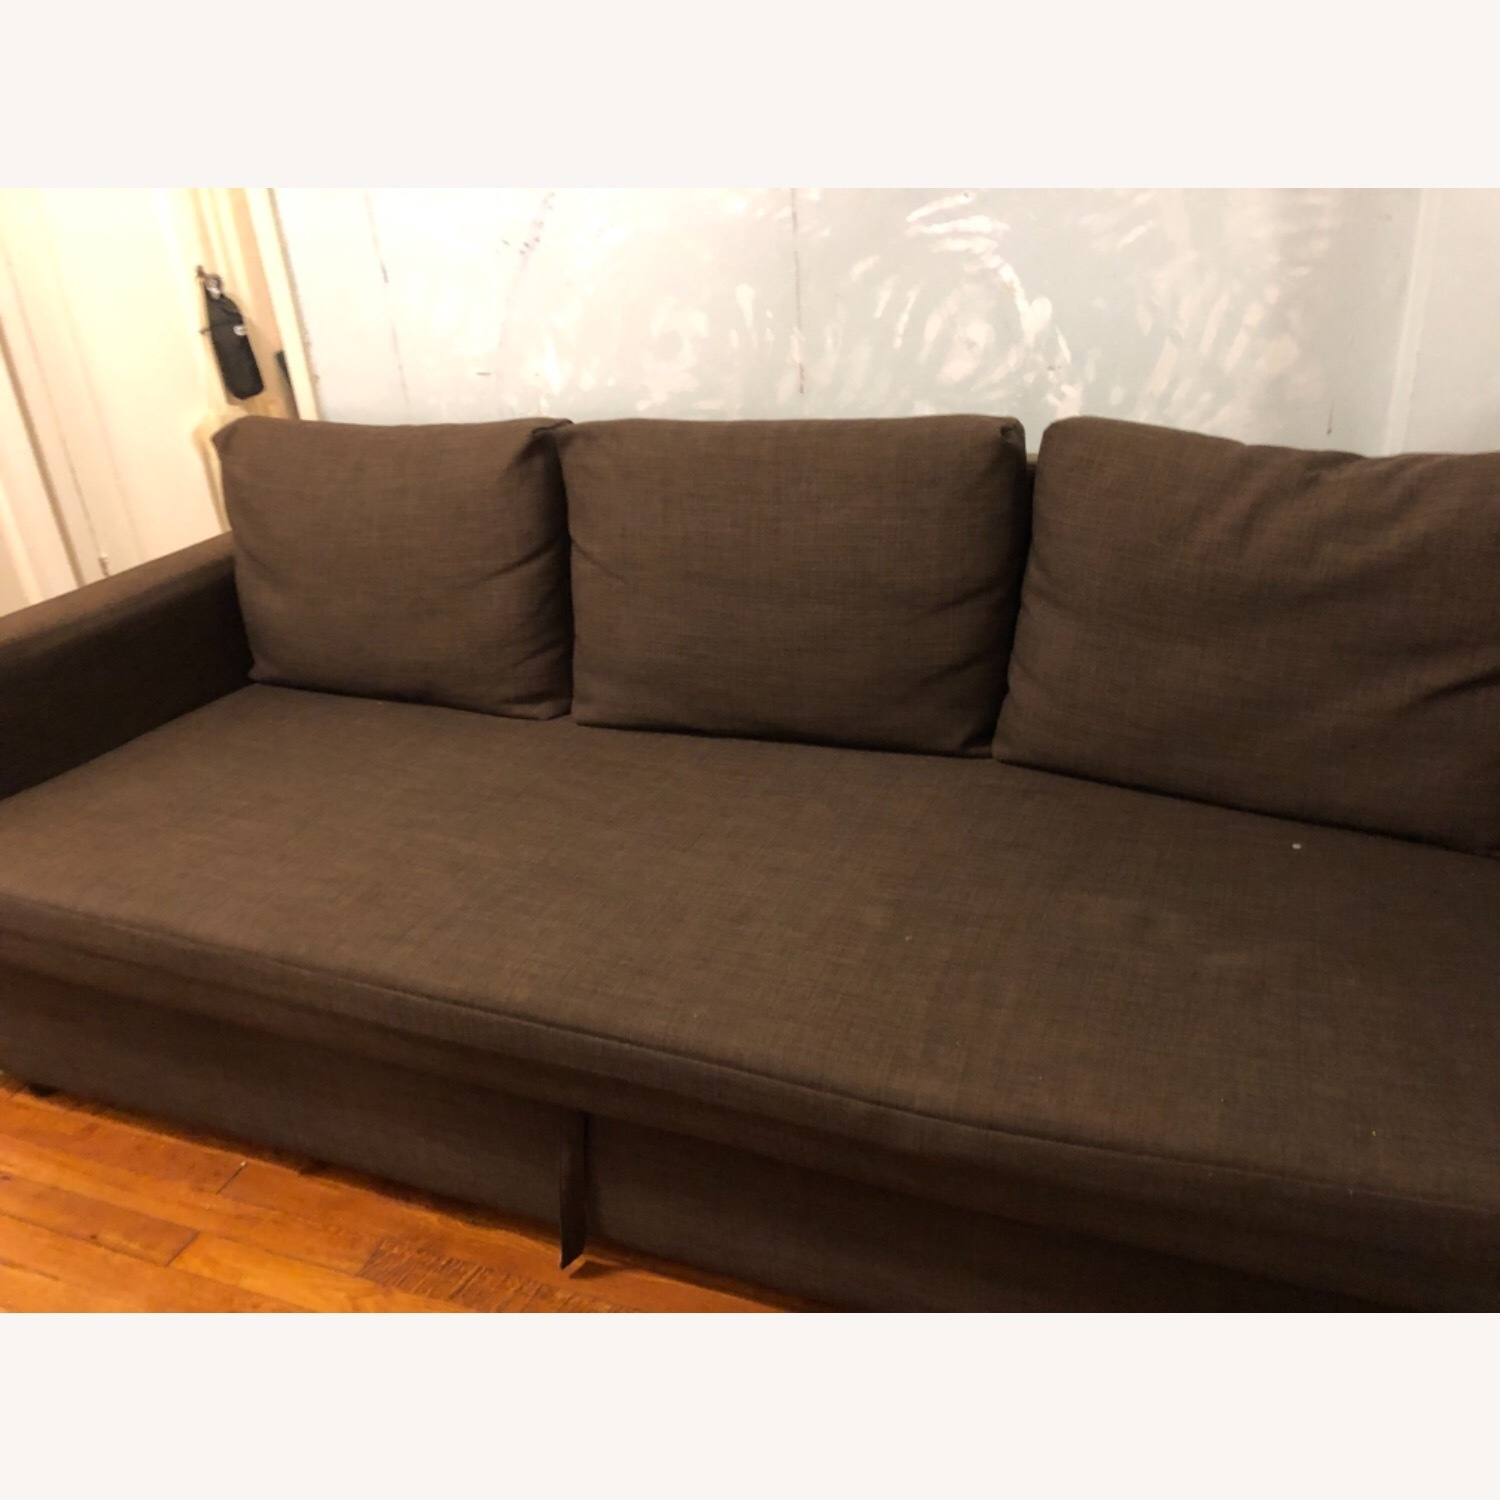 IKEA FRIHETEN Sleeper Sofa in brown - image-3